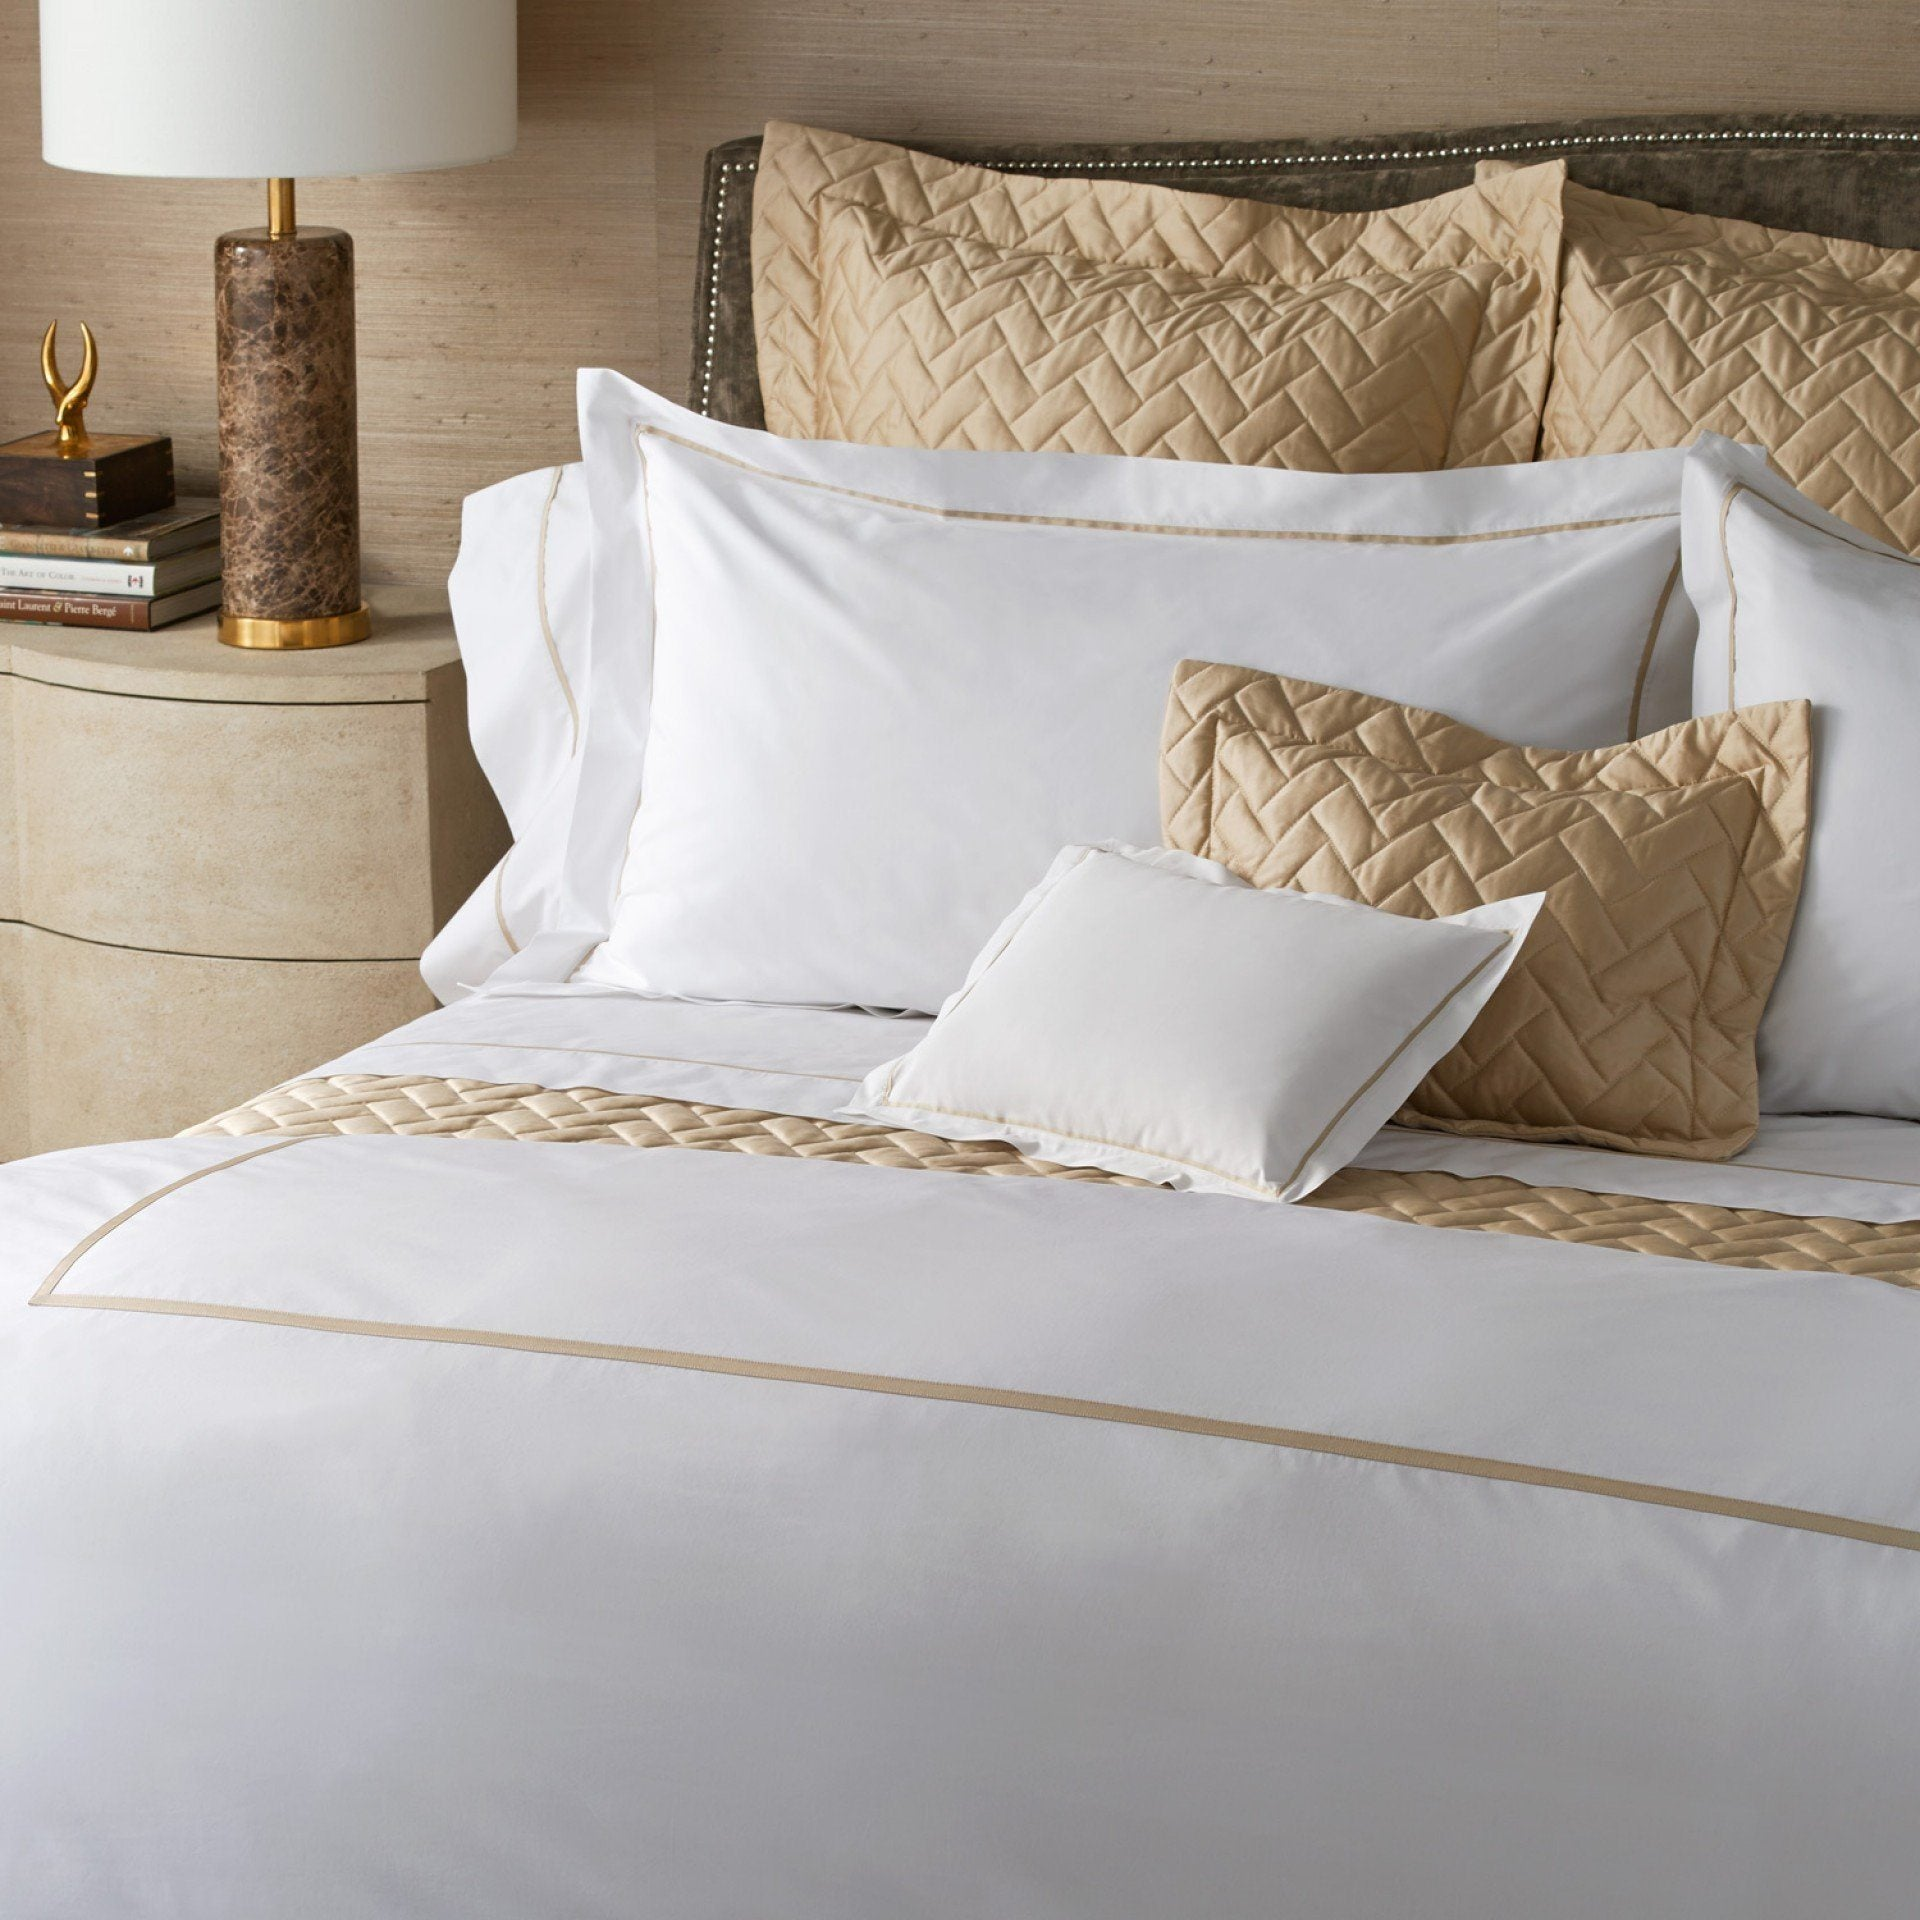 Fig Linens - Matouk Luxury Bed Linens - Gatsby